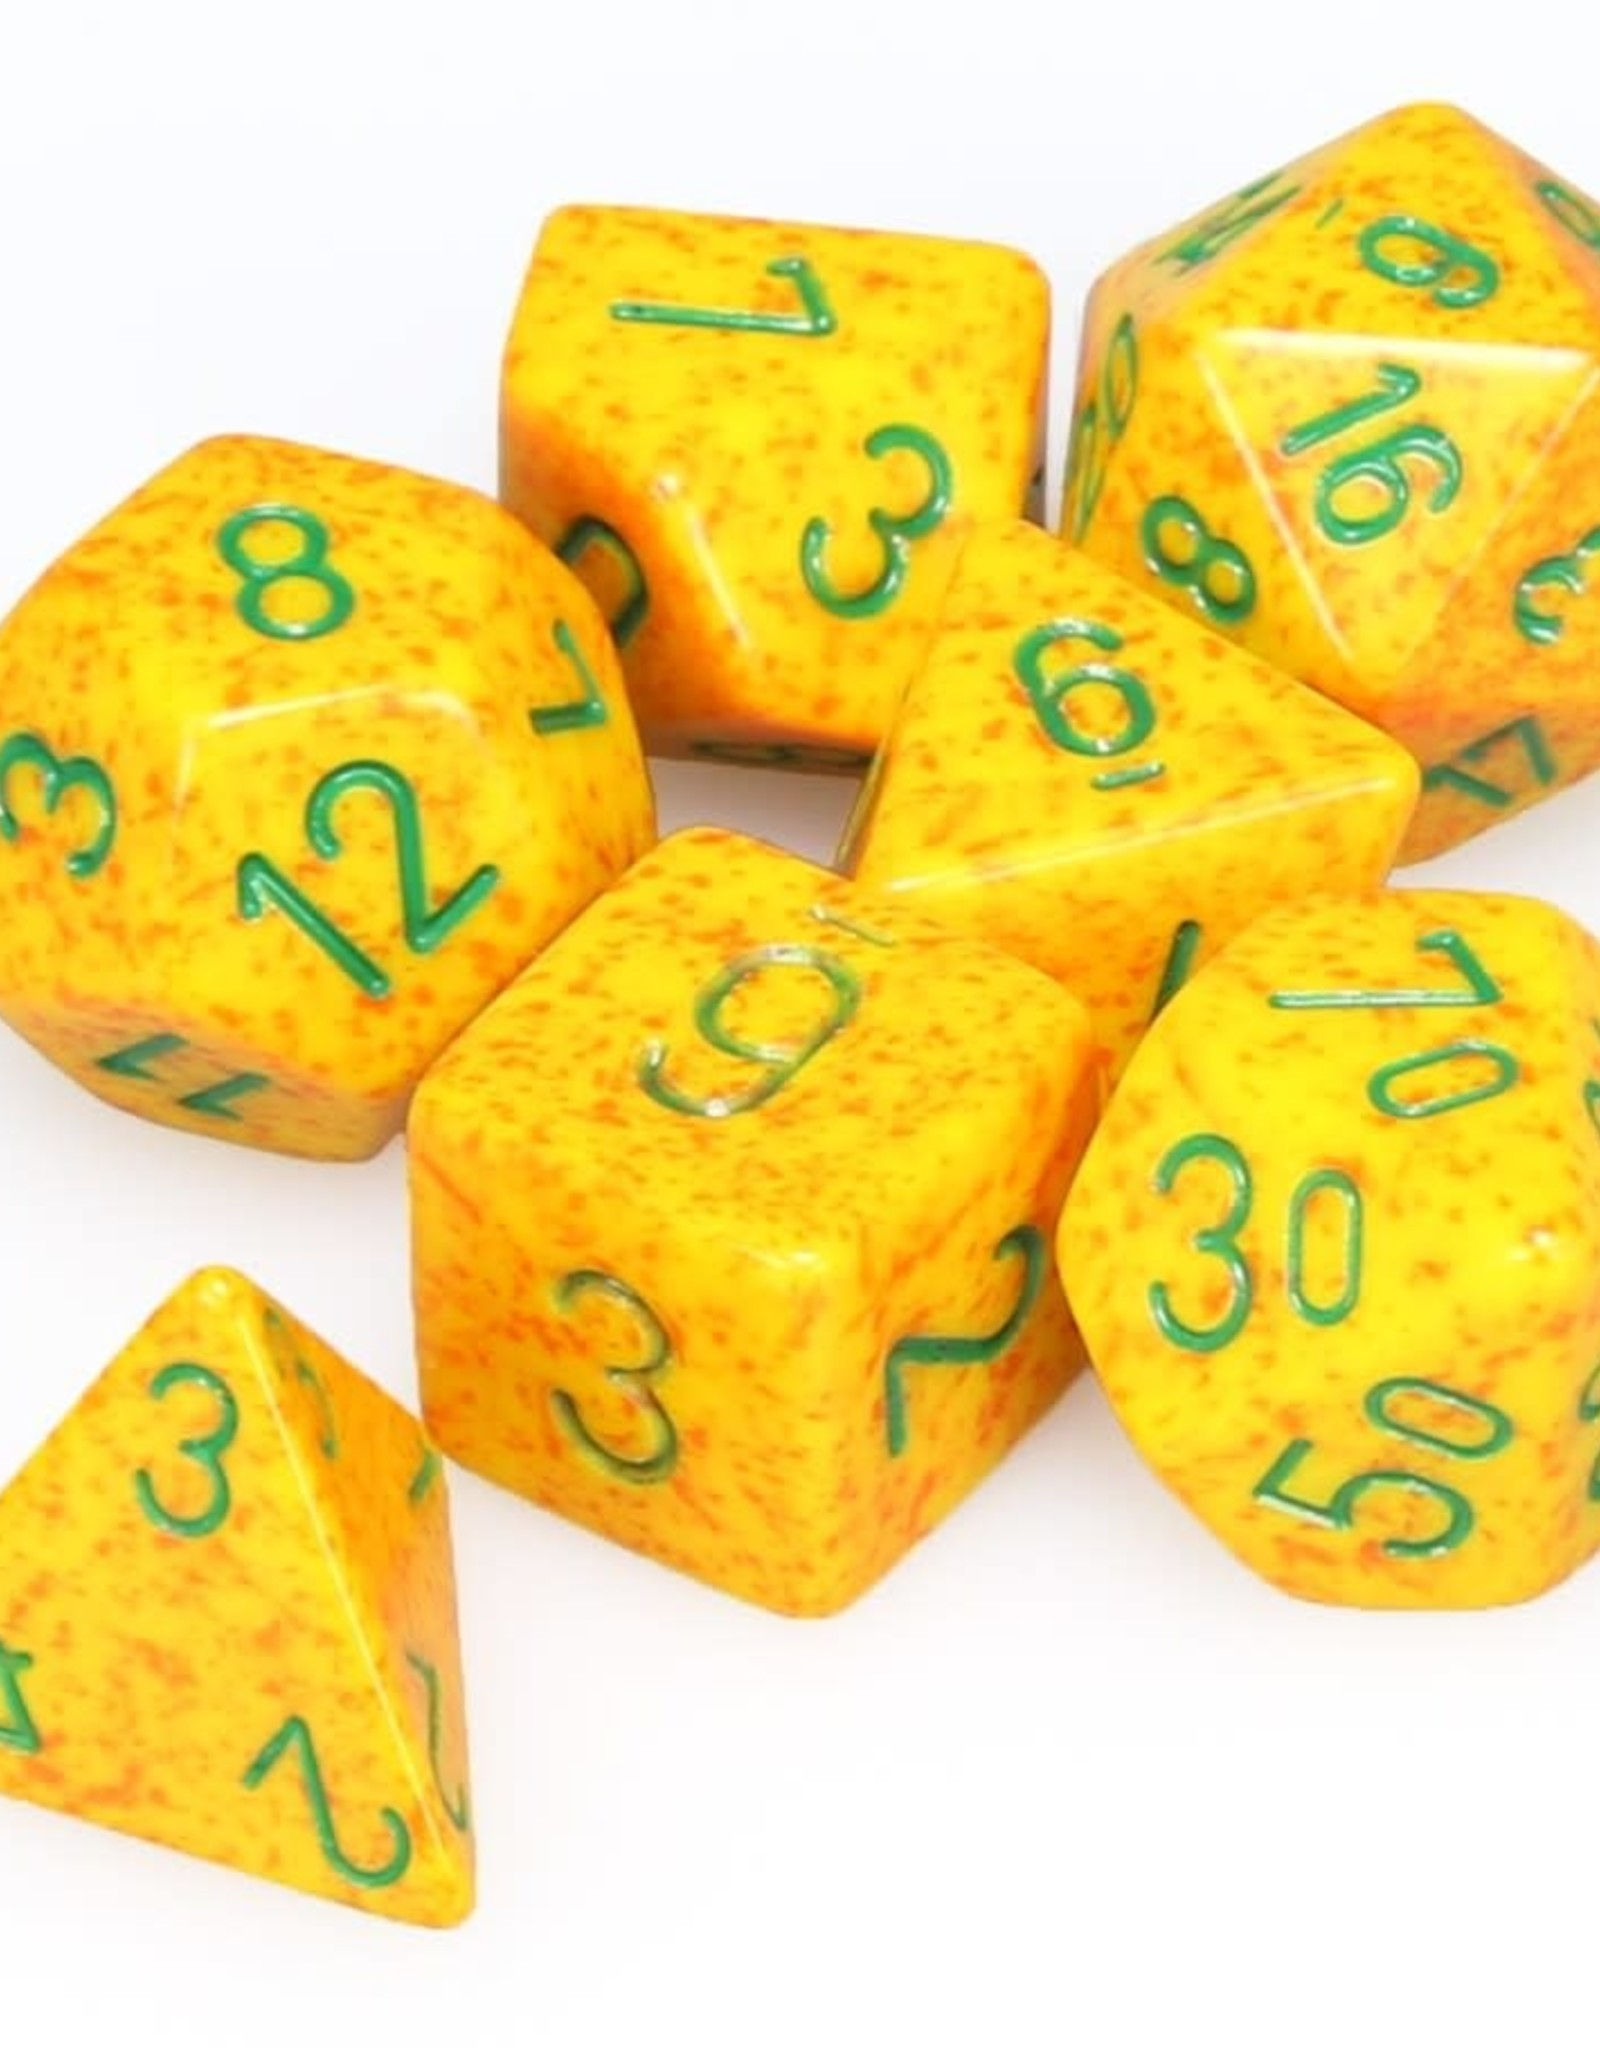 Chessex Dice Block 7ct. - Speckled Lotus